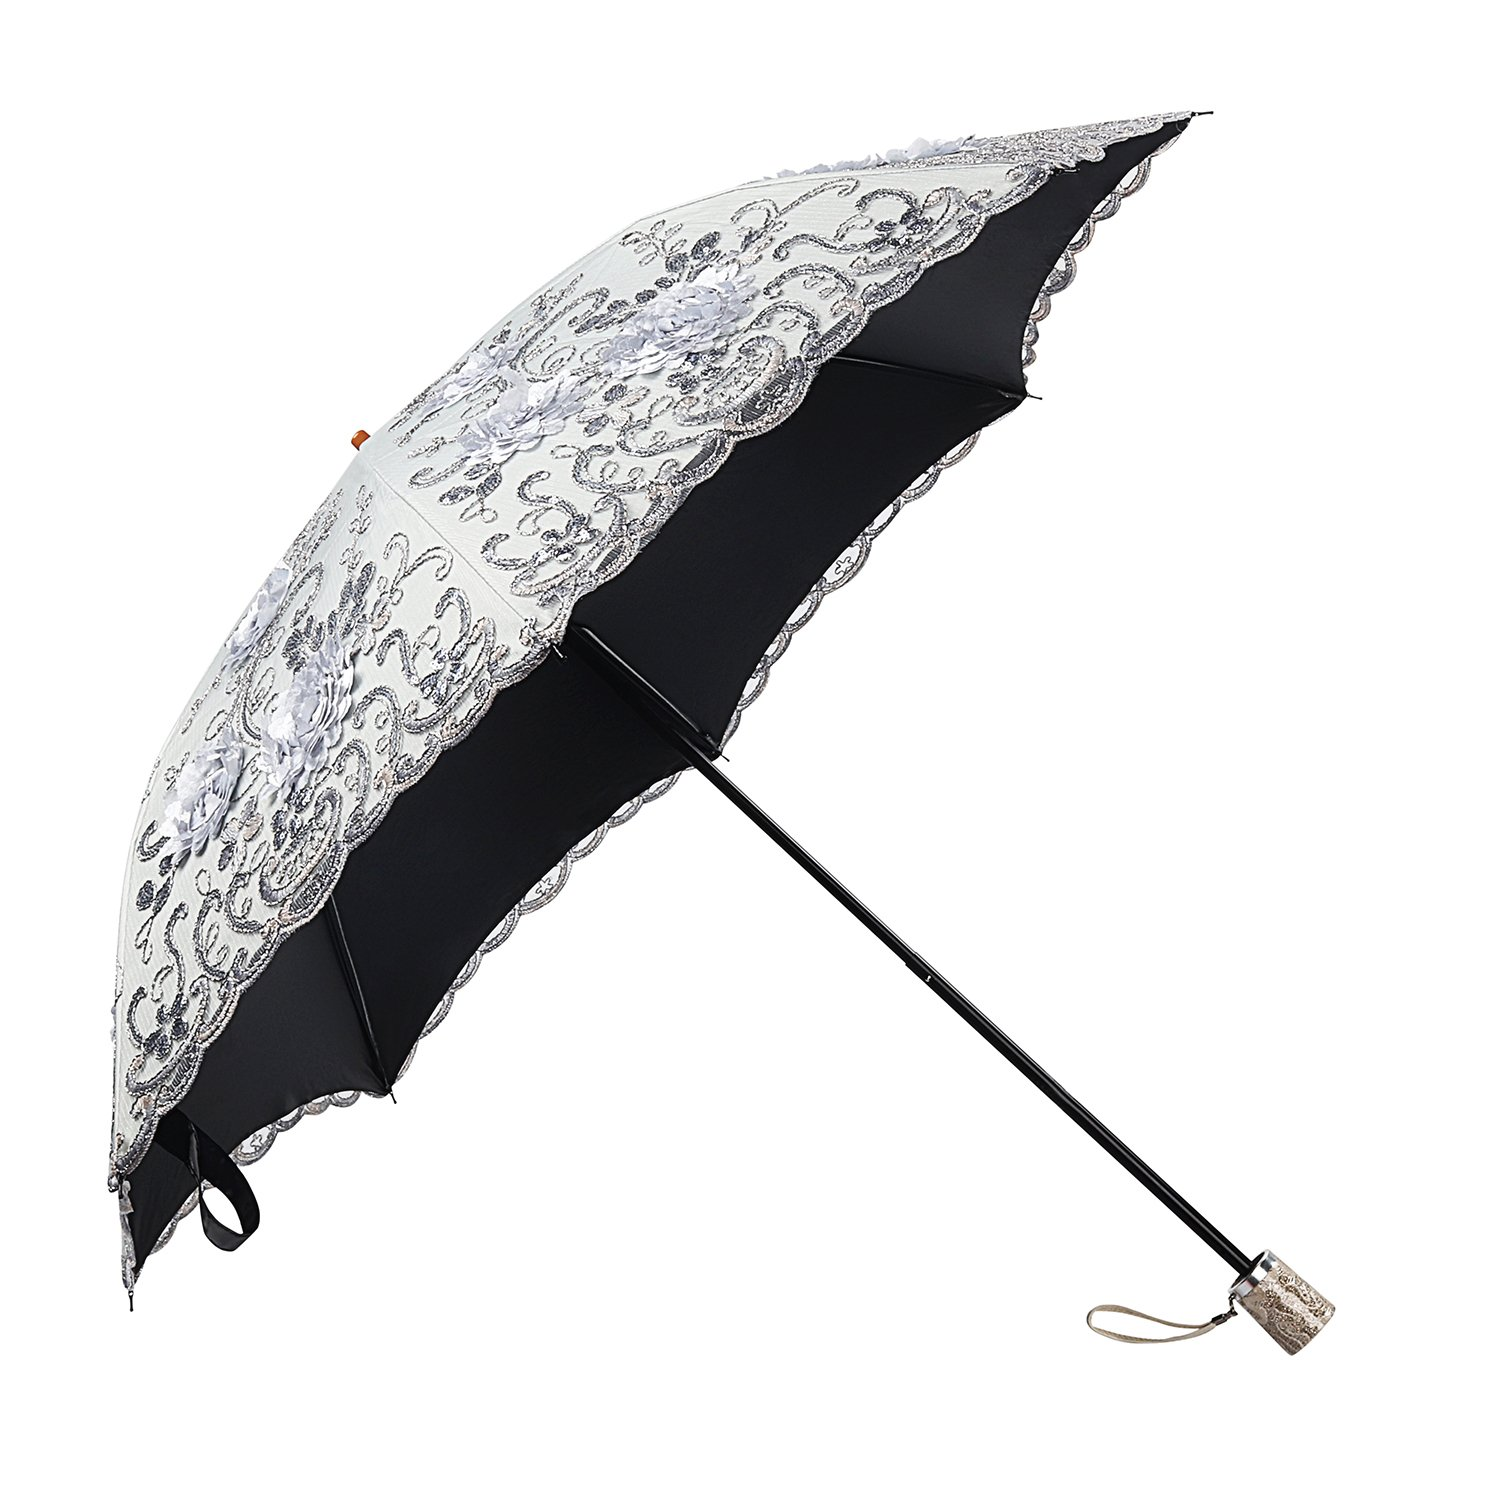 Molshine Retro Portable Parasol,Hand-Embroidered Foldable Umbrella,UV Protection